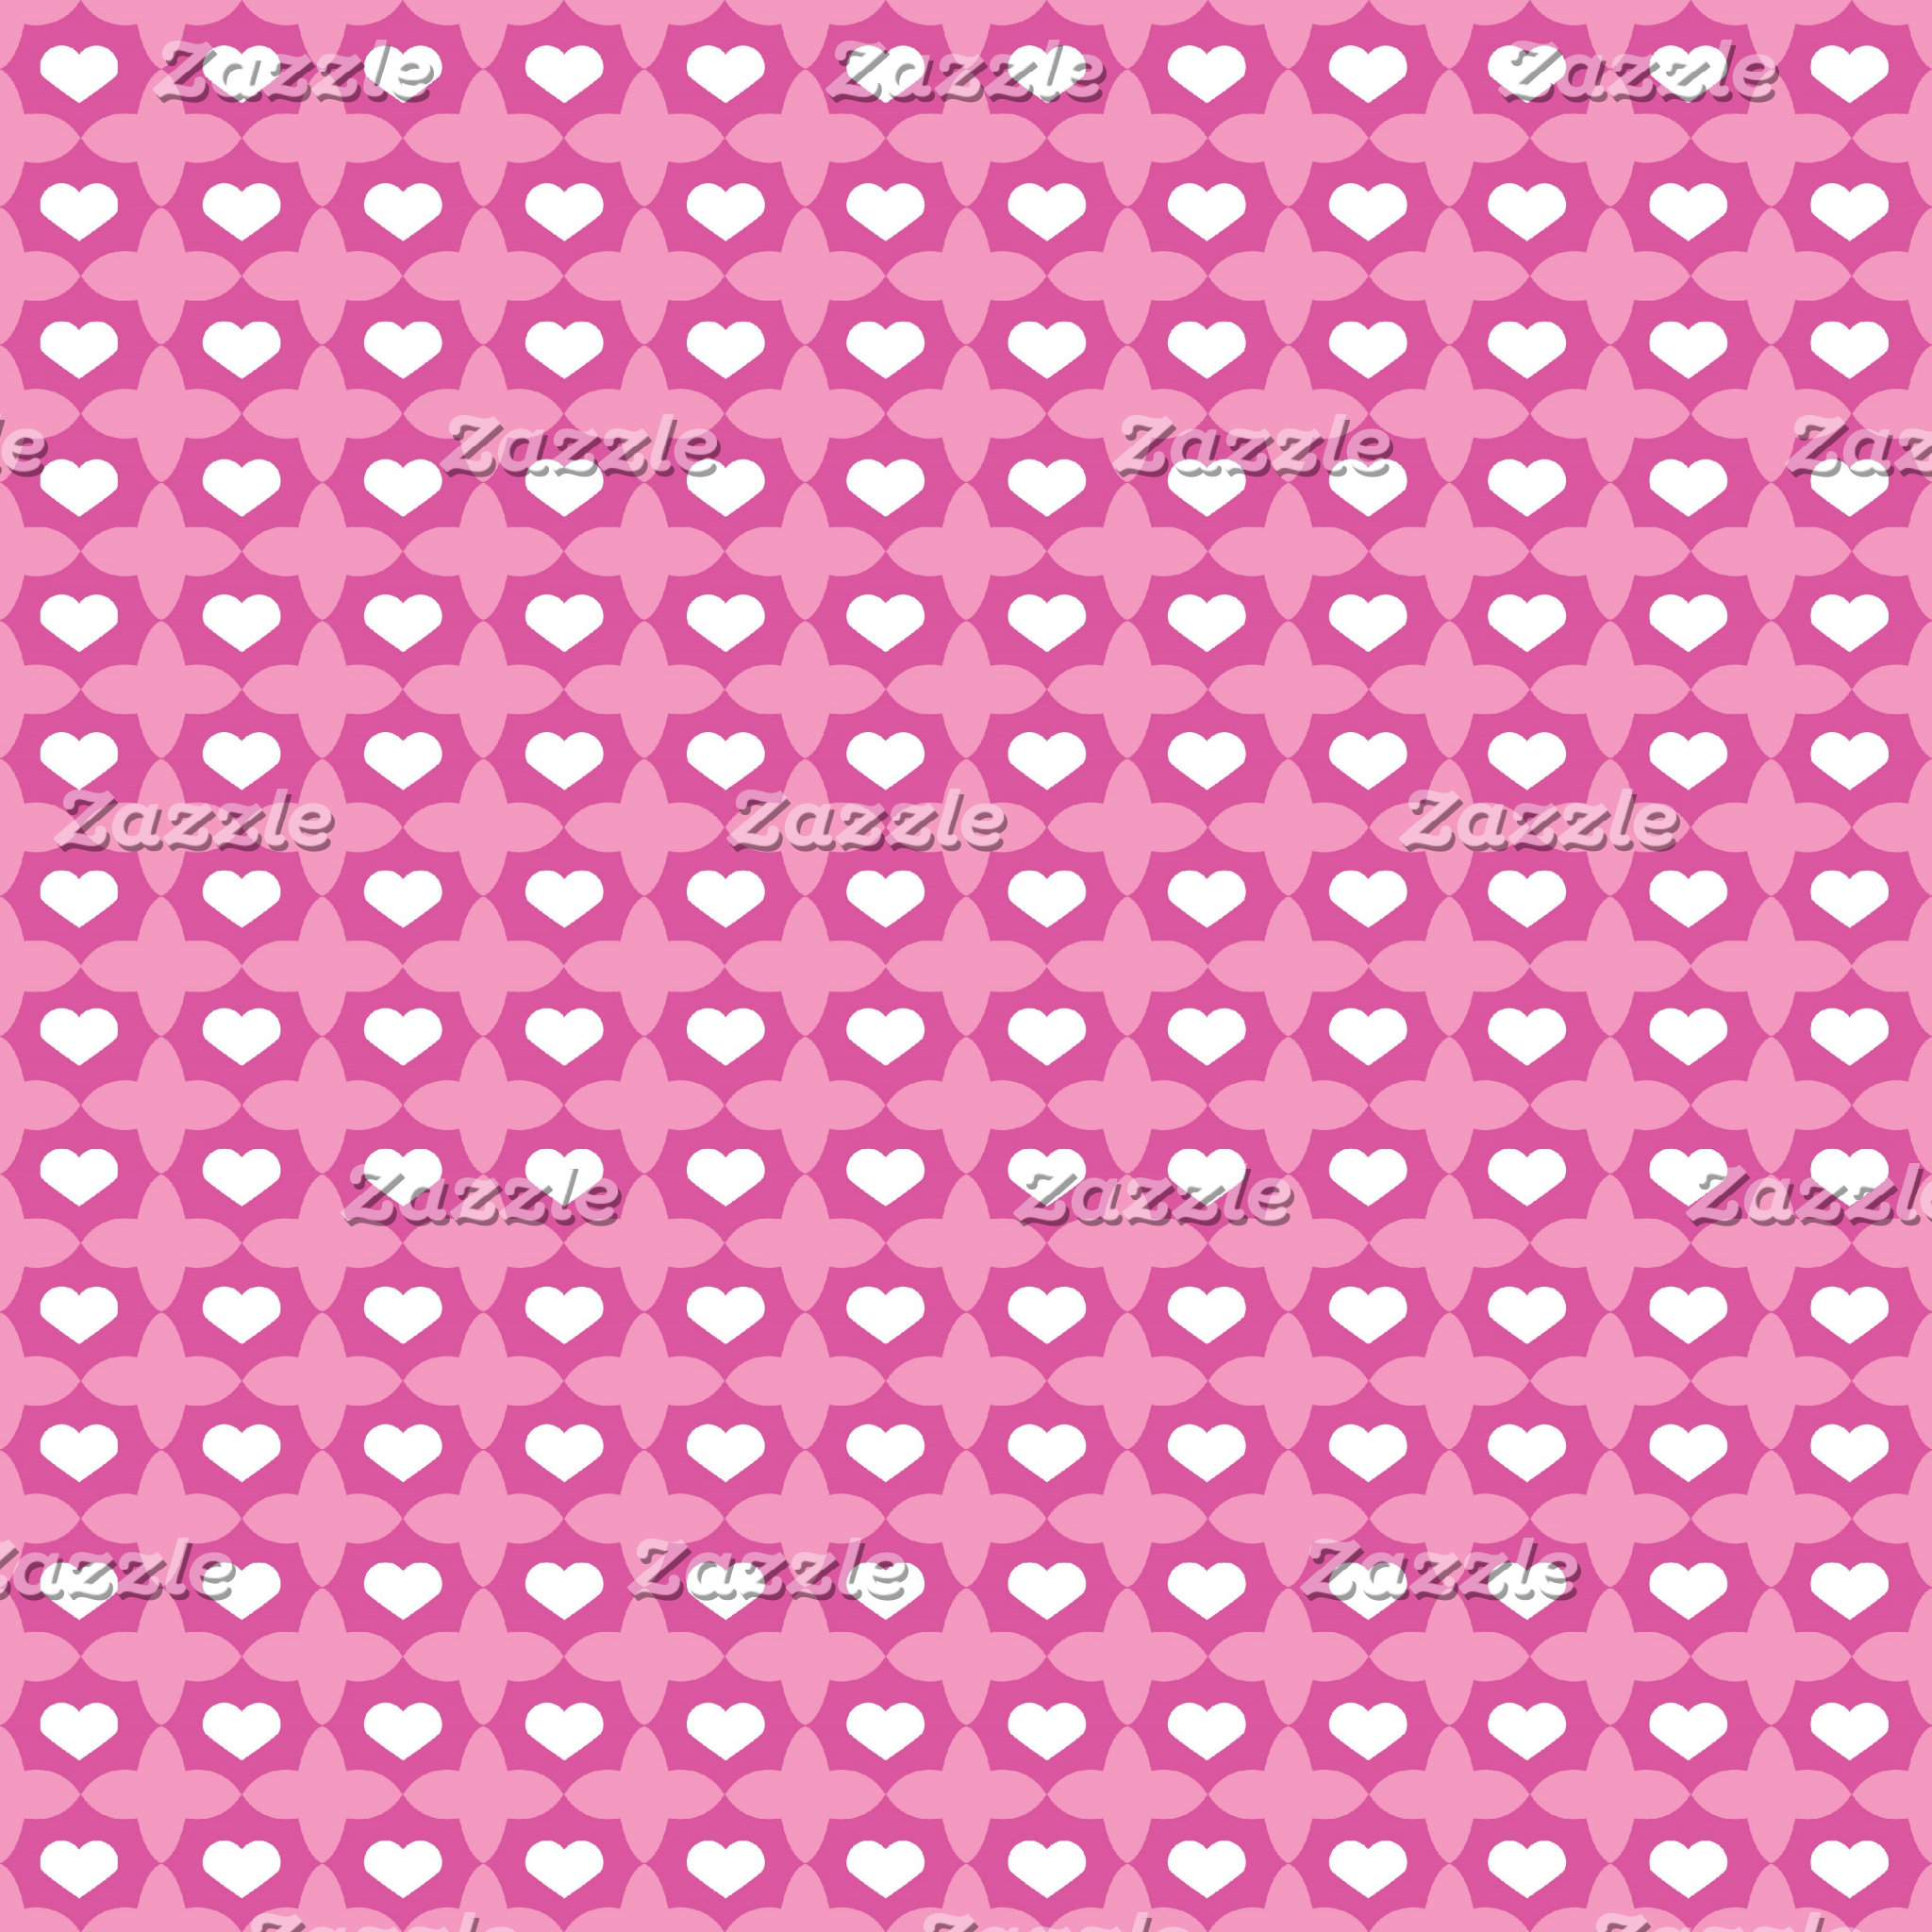 Chic Pink Hearts